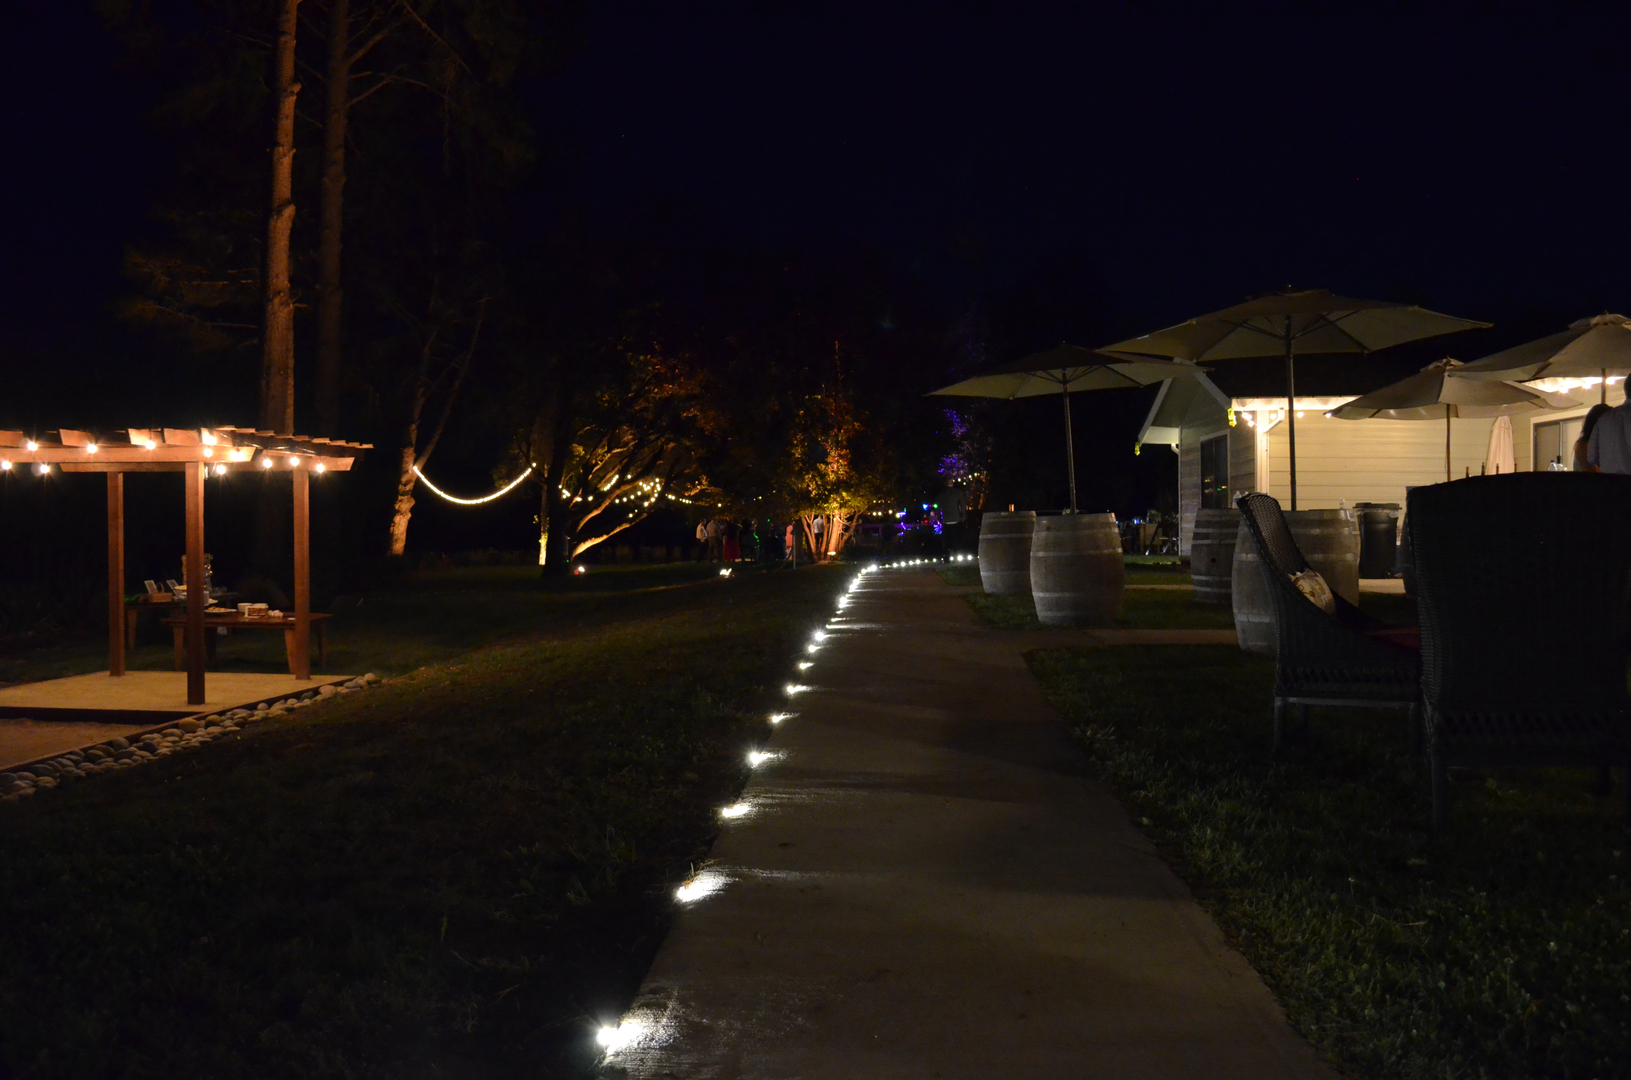 Nightime at Indian Creek Inn lit with strung lights keeps Anderson Valley weddings festive